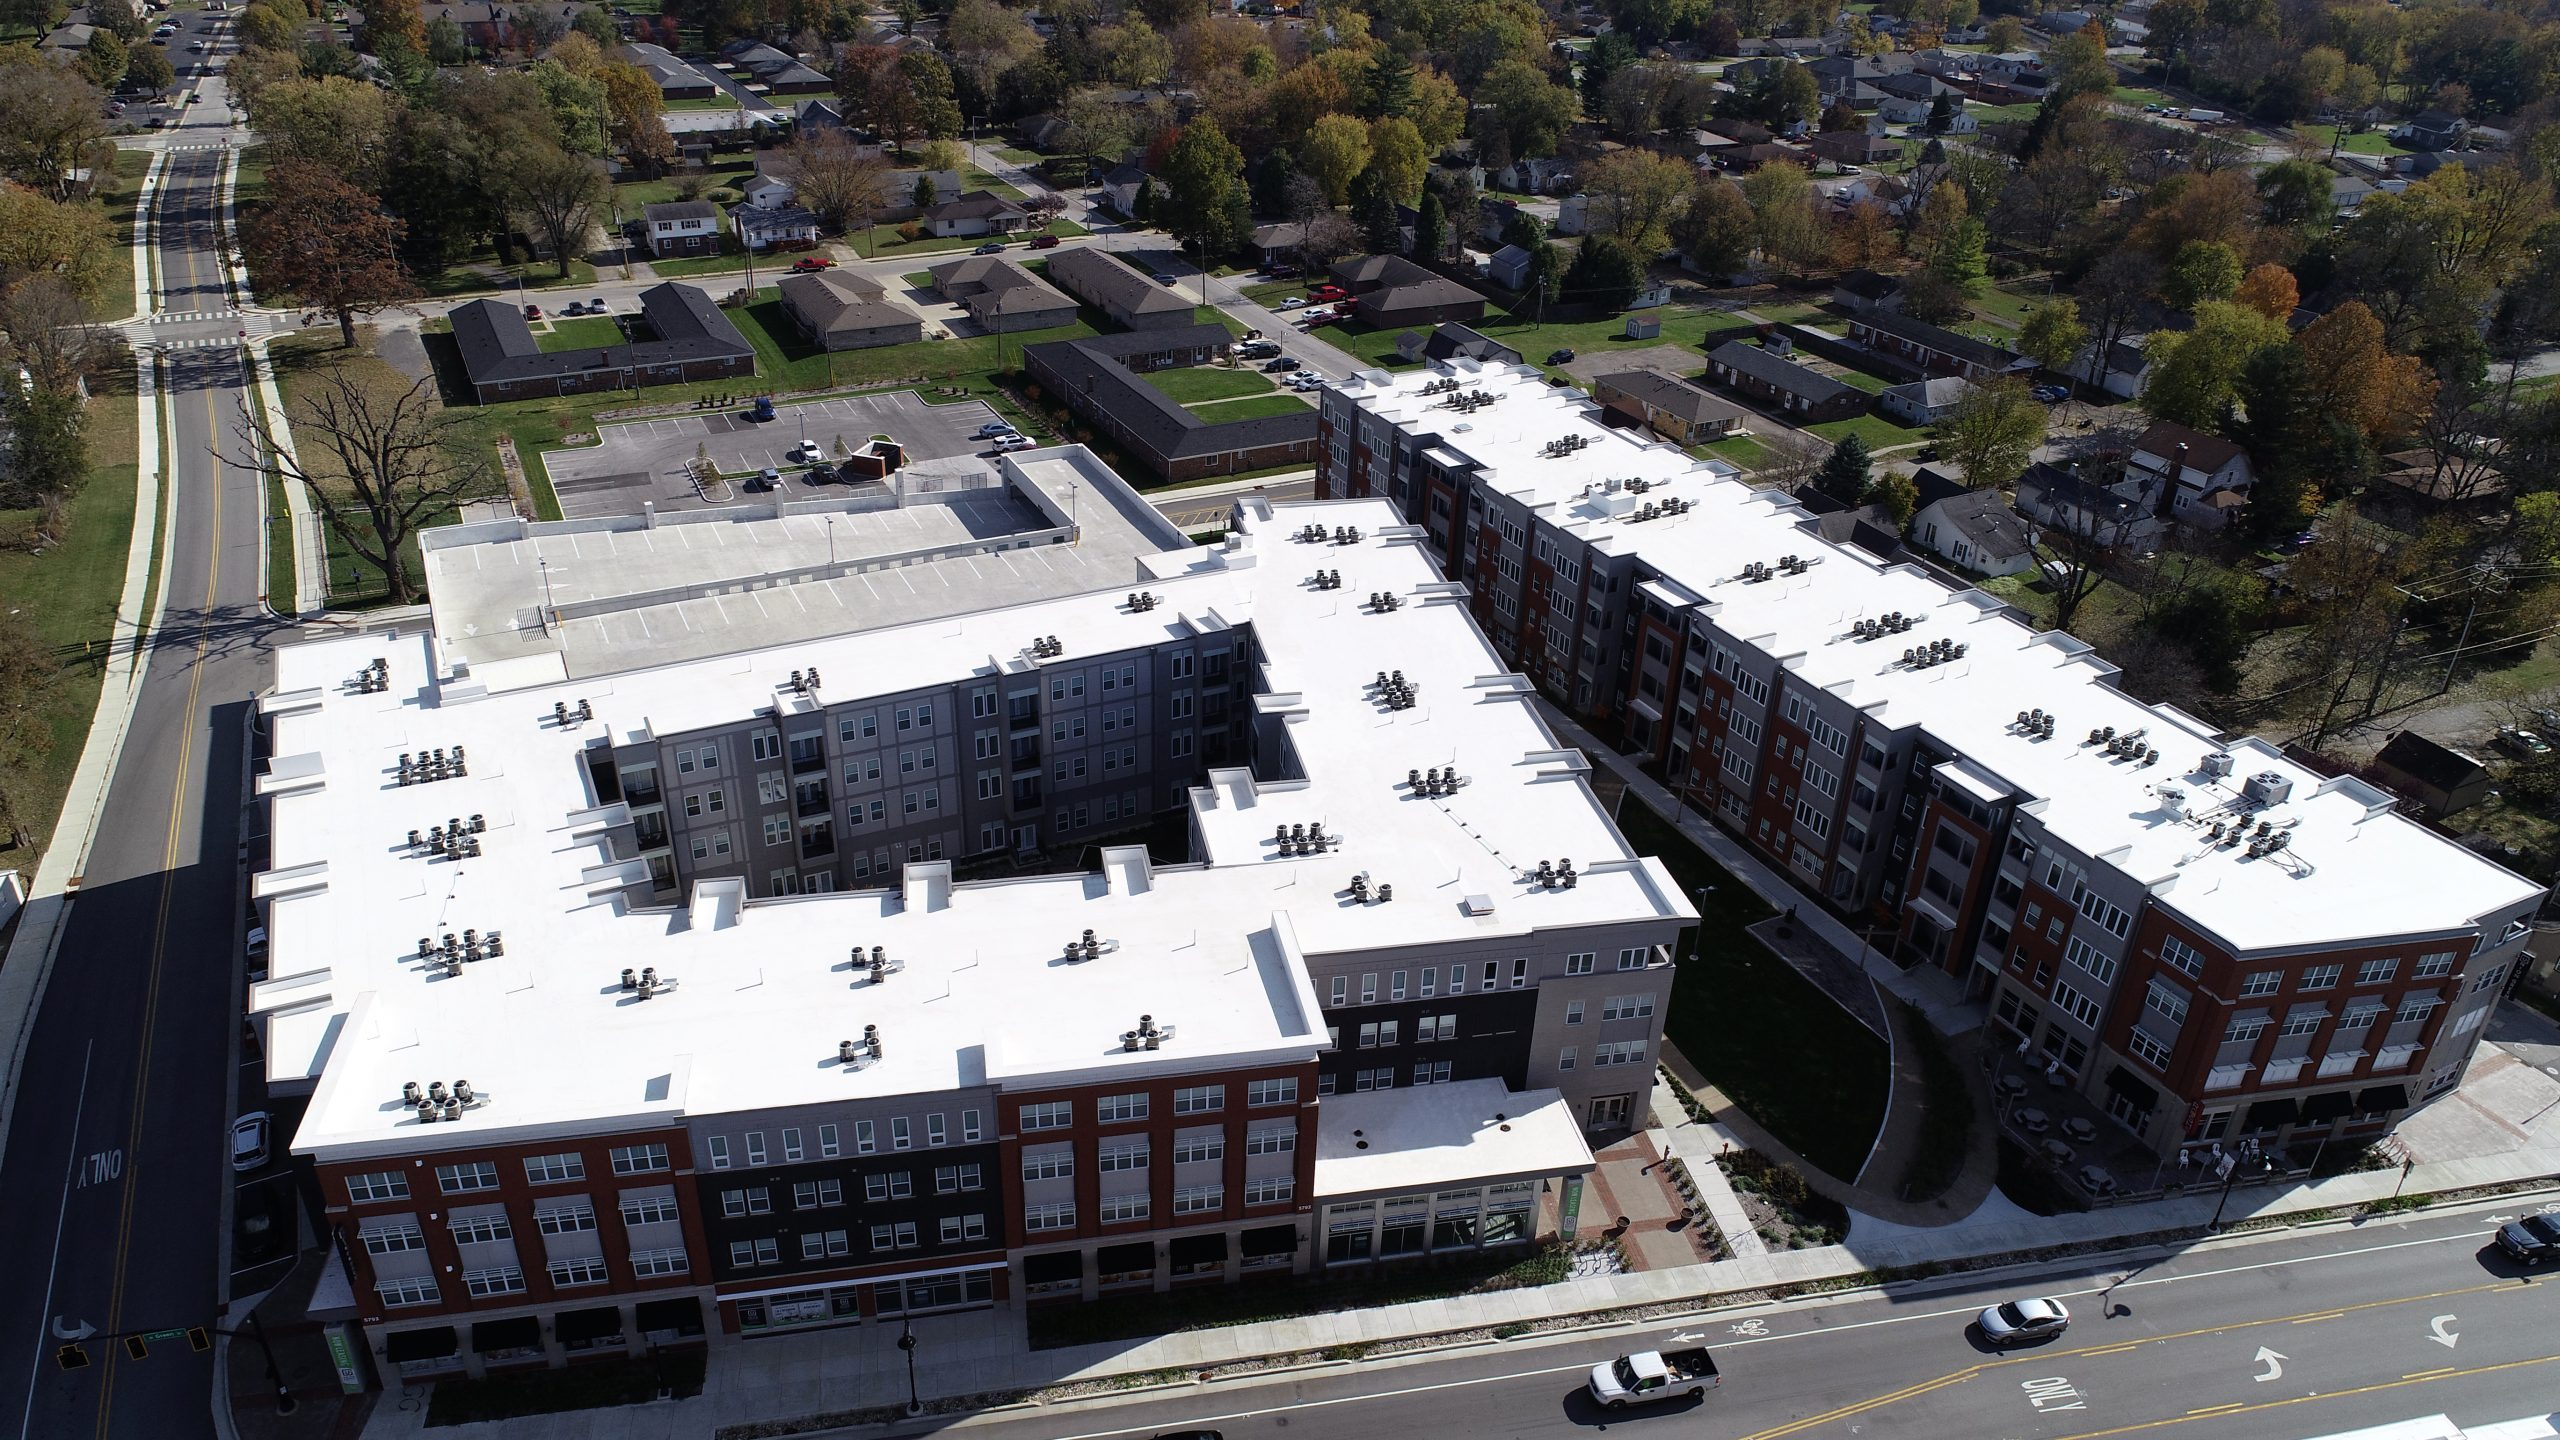 brownburg town center commercial roofing project by ce reeve roofing in indiana